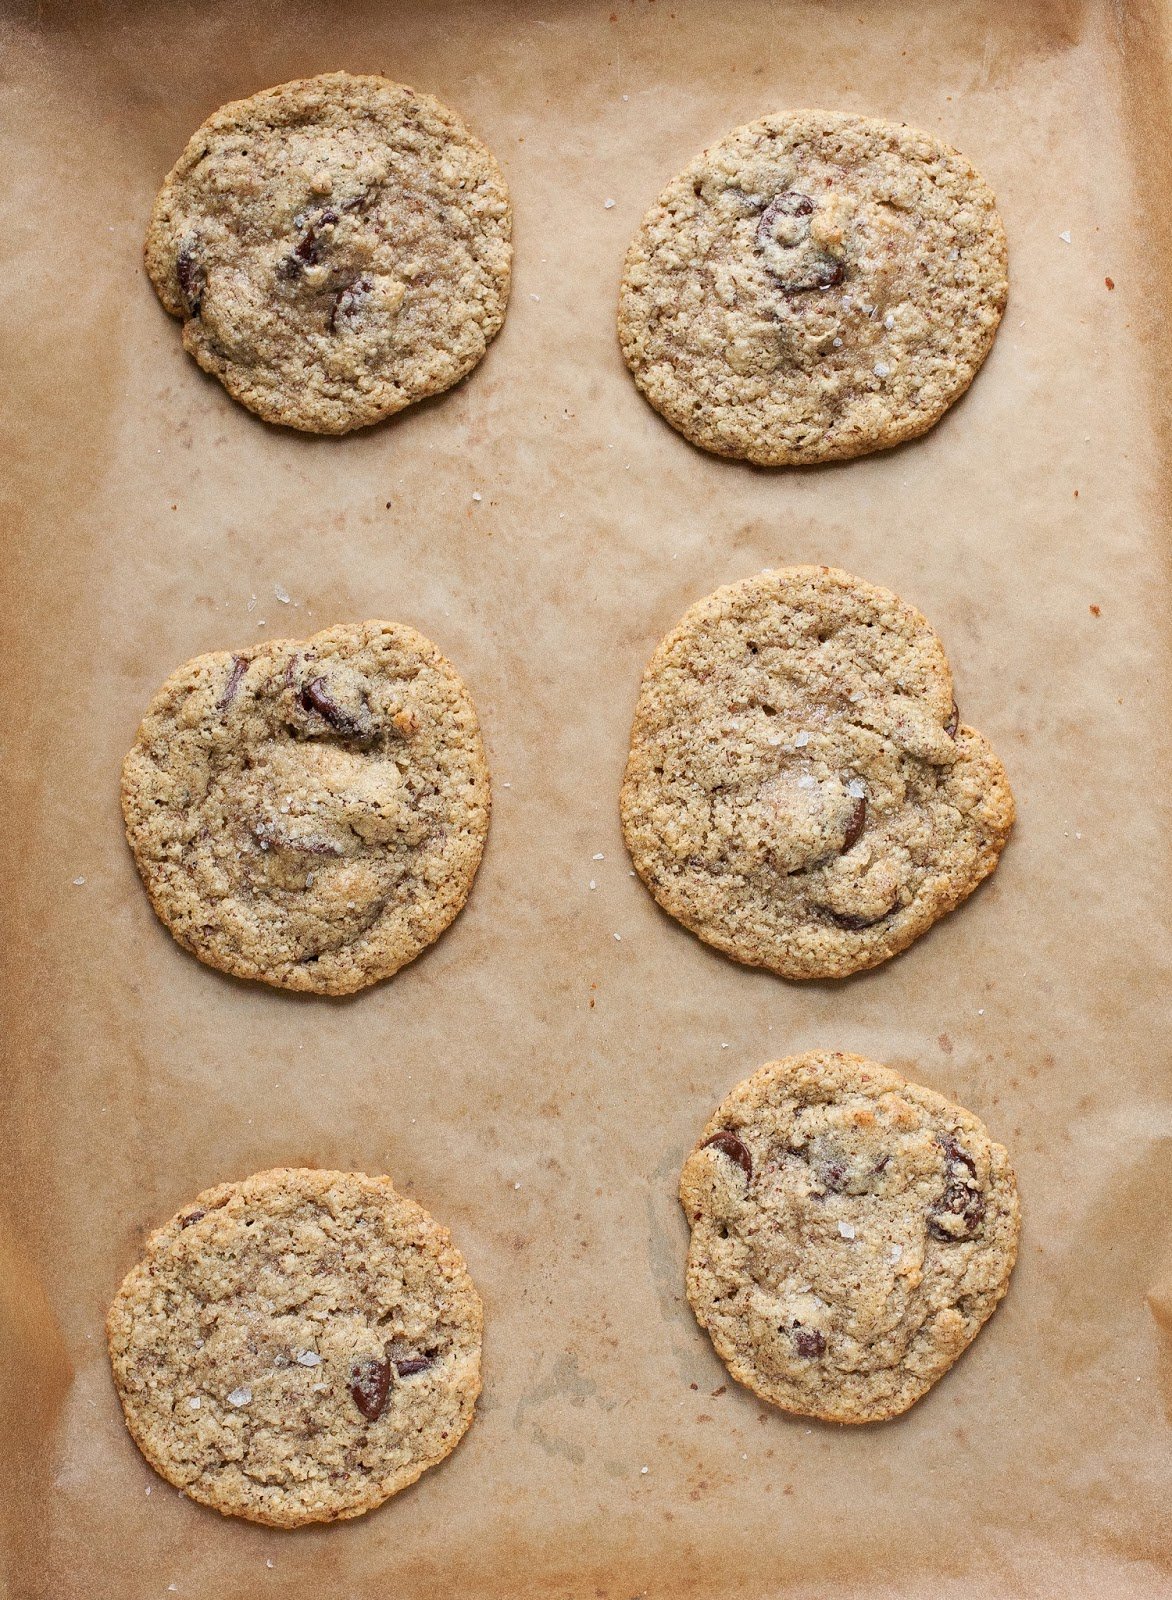 Salted Chocolate Chip Hazelnut Cookies (Grain free)